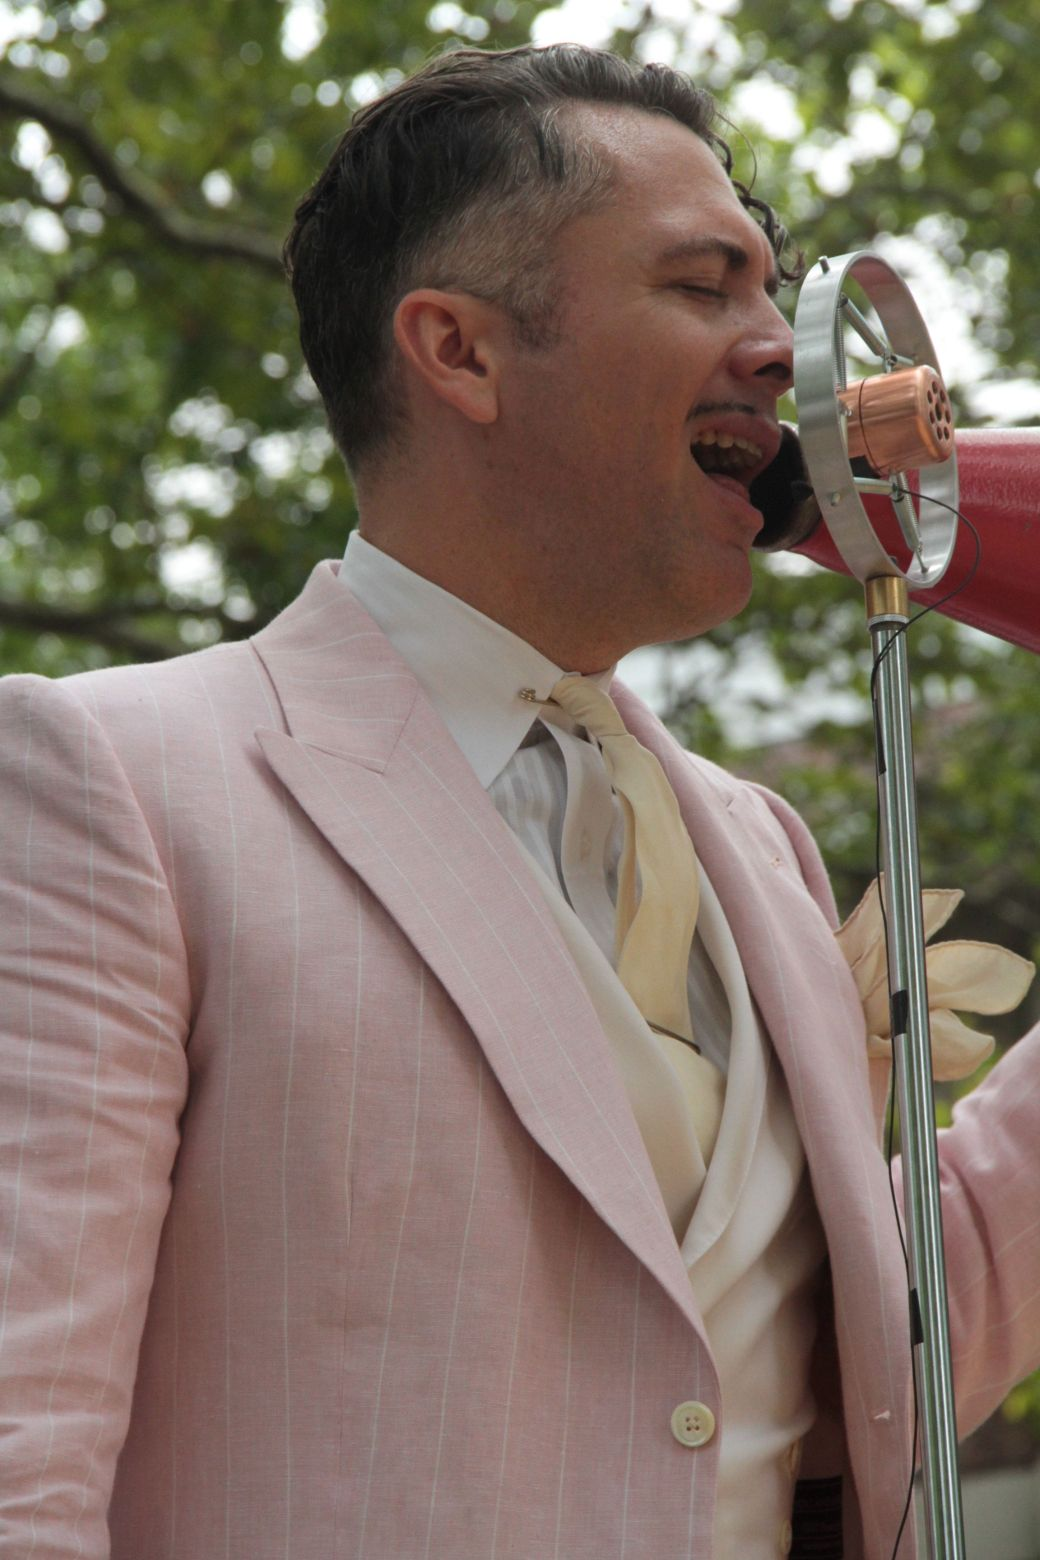 new york city governors island 20 jazz age party 2013 michael arenella with megaphone side view